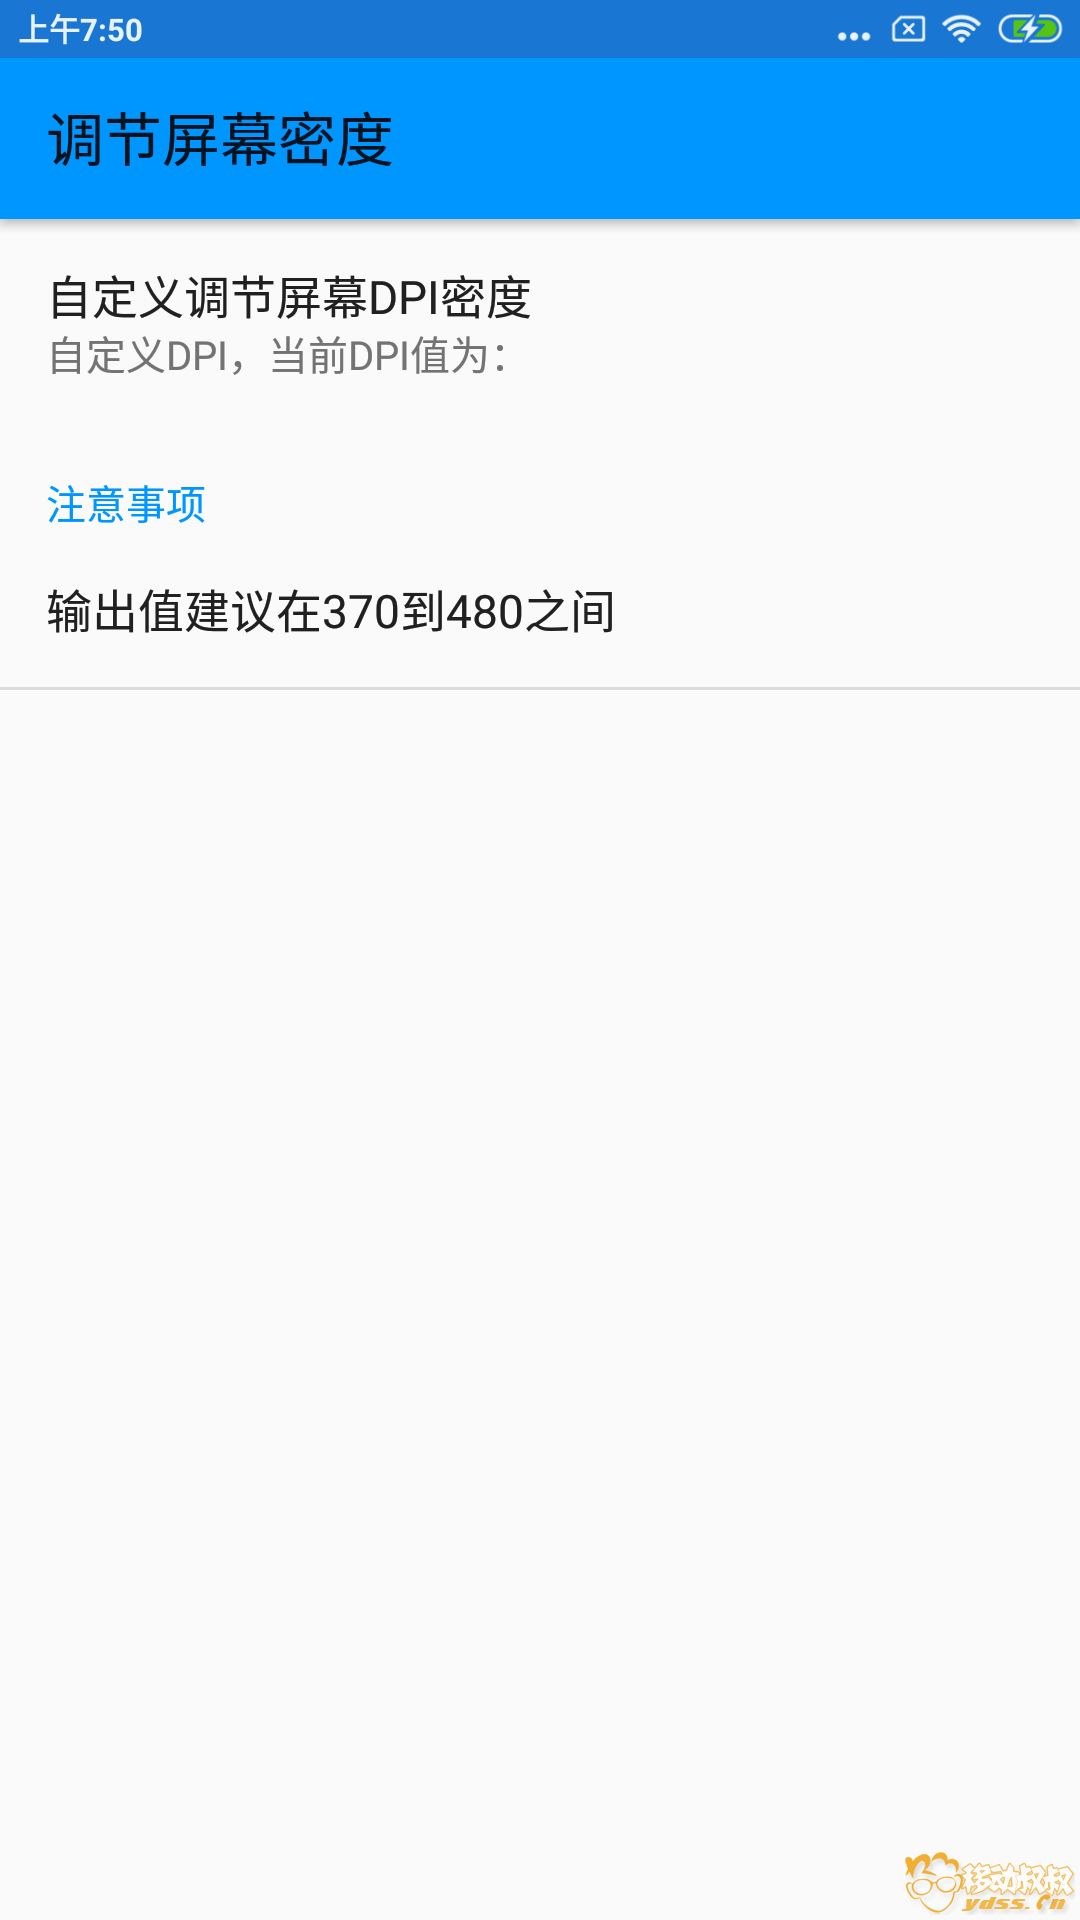 Screenshot_2018-07-11-07-50-17-124_com.zhanhong.tools.png